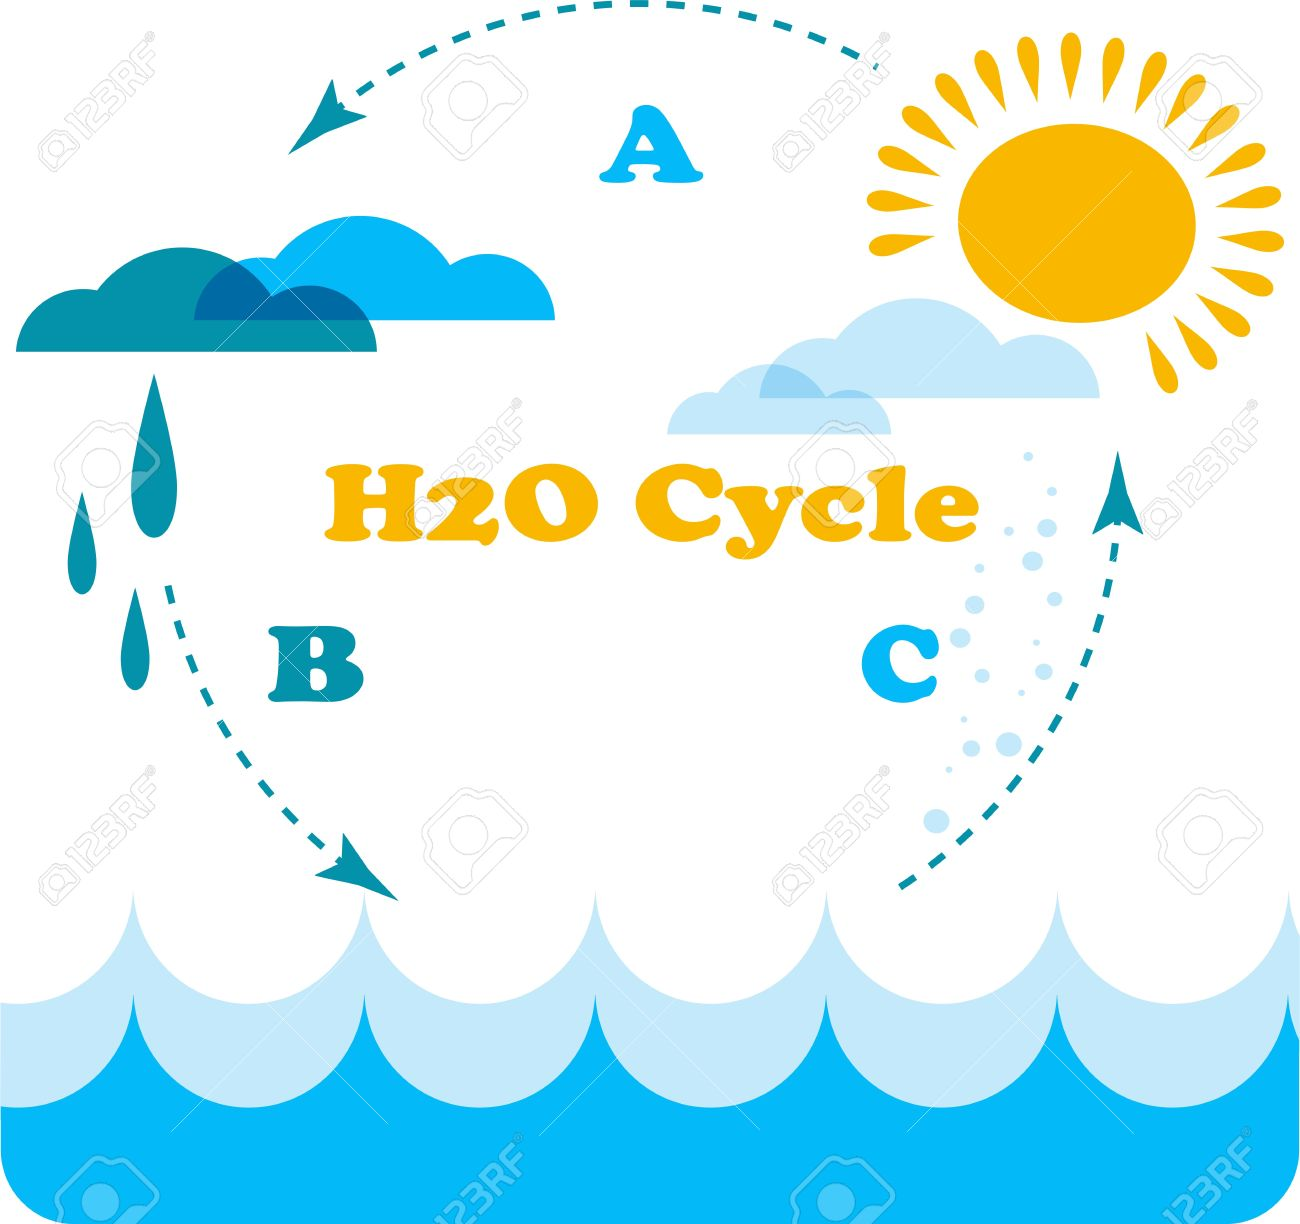 Water cycle clipart frame clip art free Water cycle clipart frame - ClipartFest clip art free